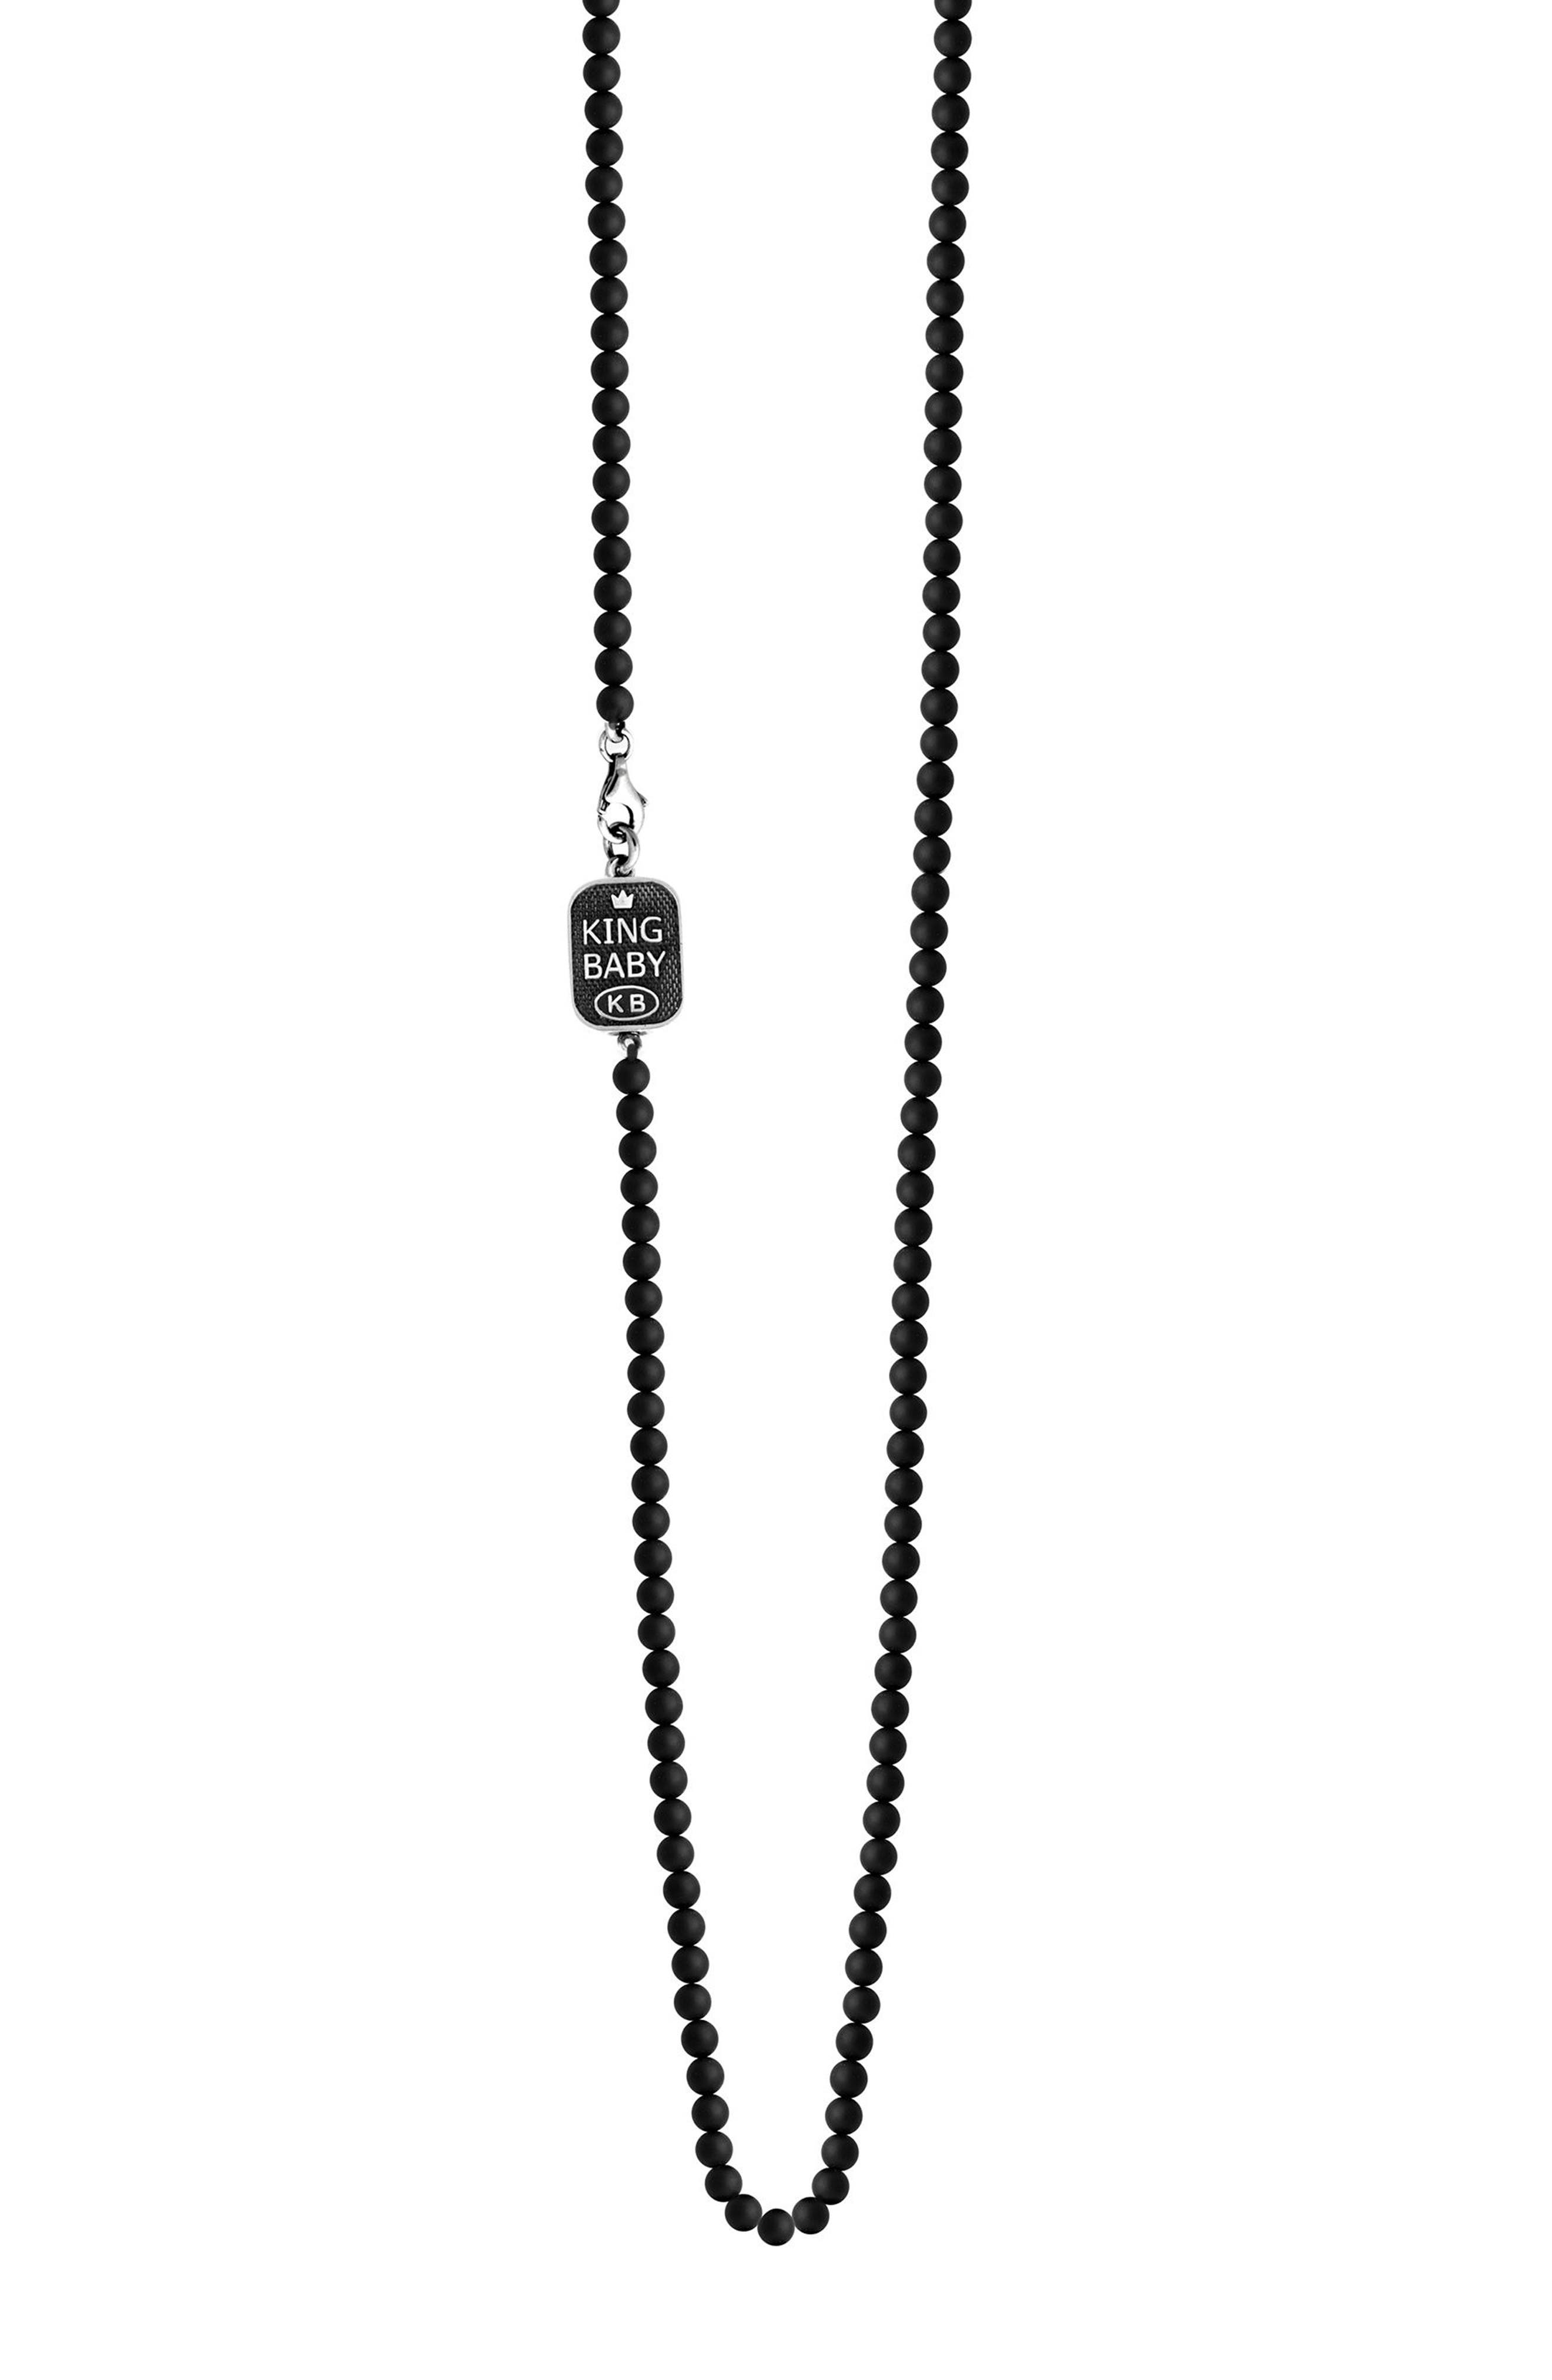 Onyx Bead Necklace,                         Main,                         color, Black